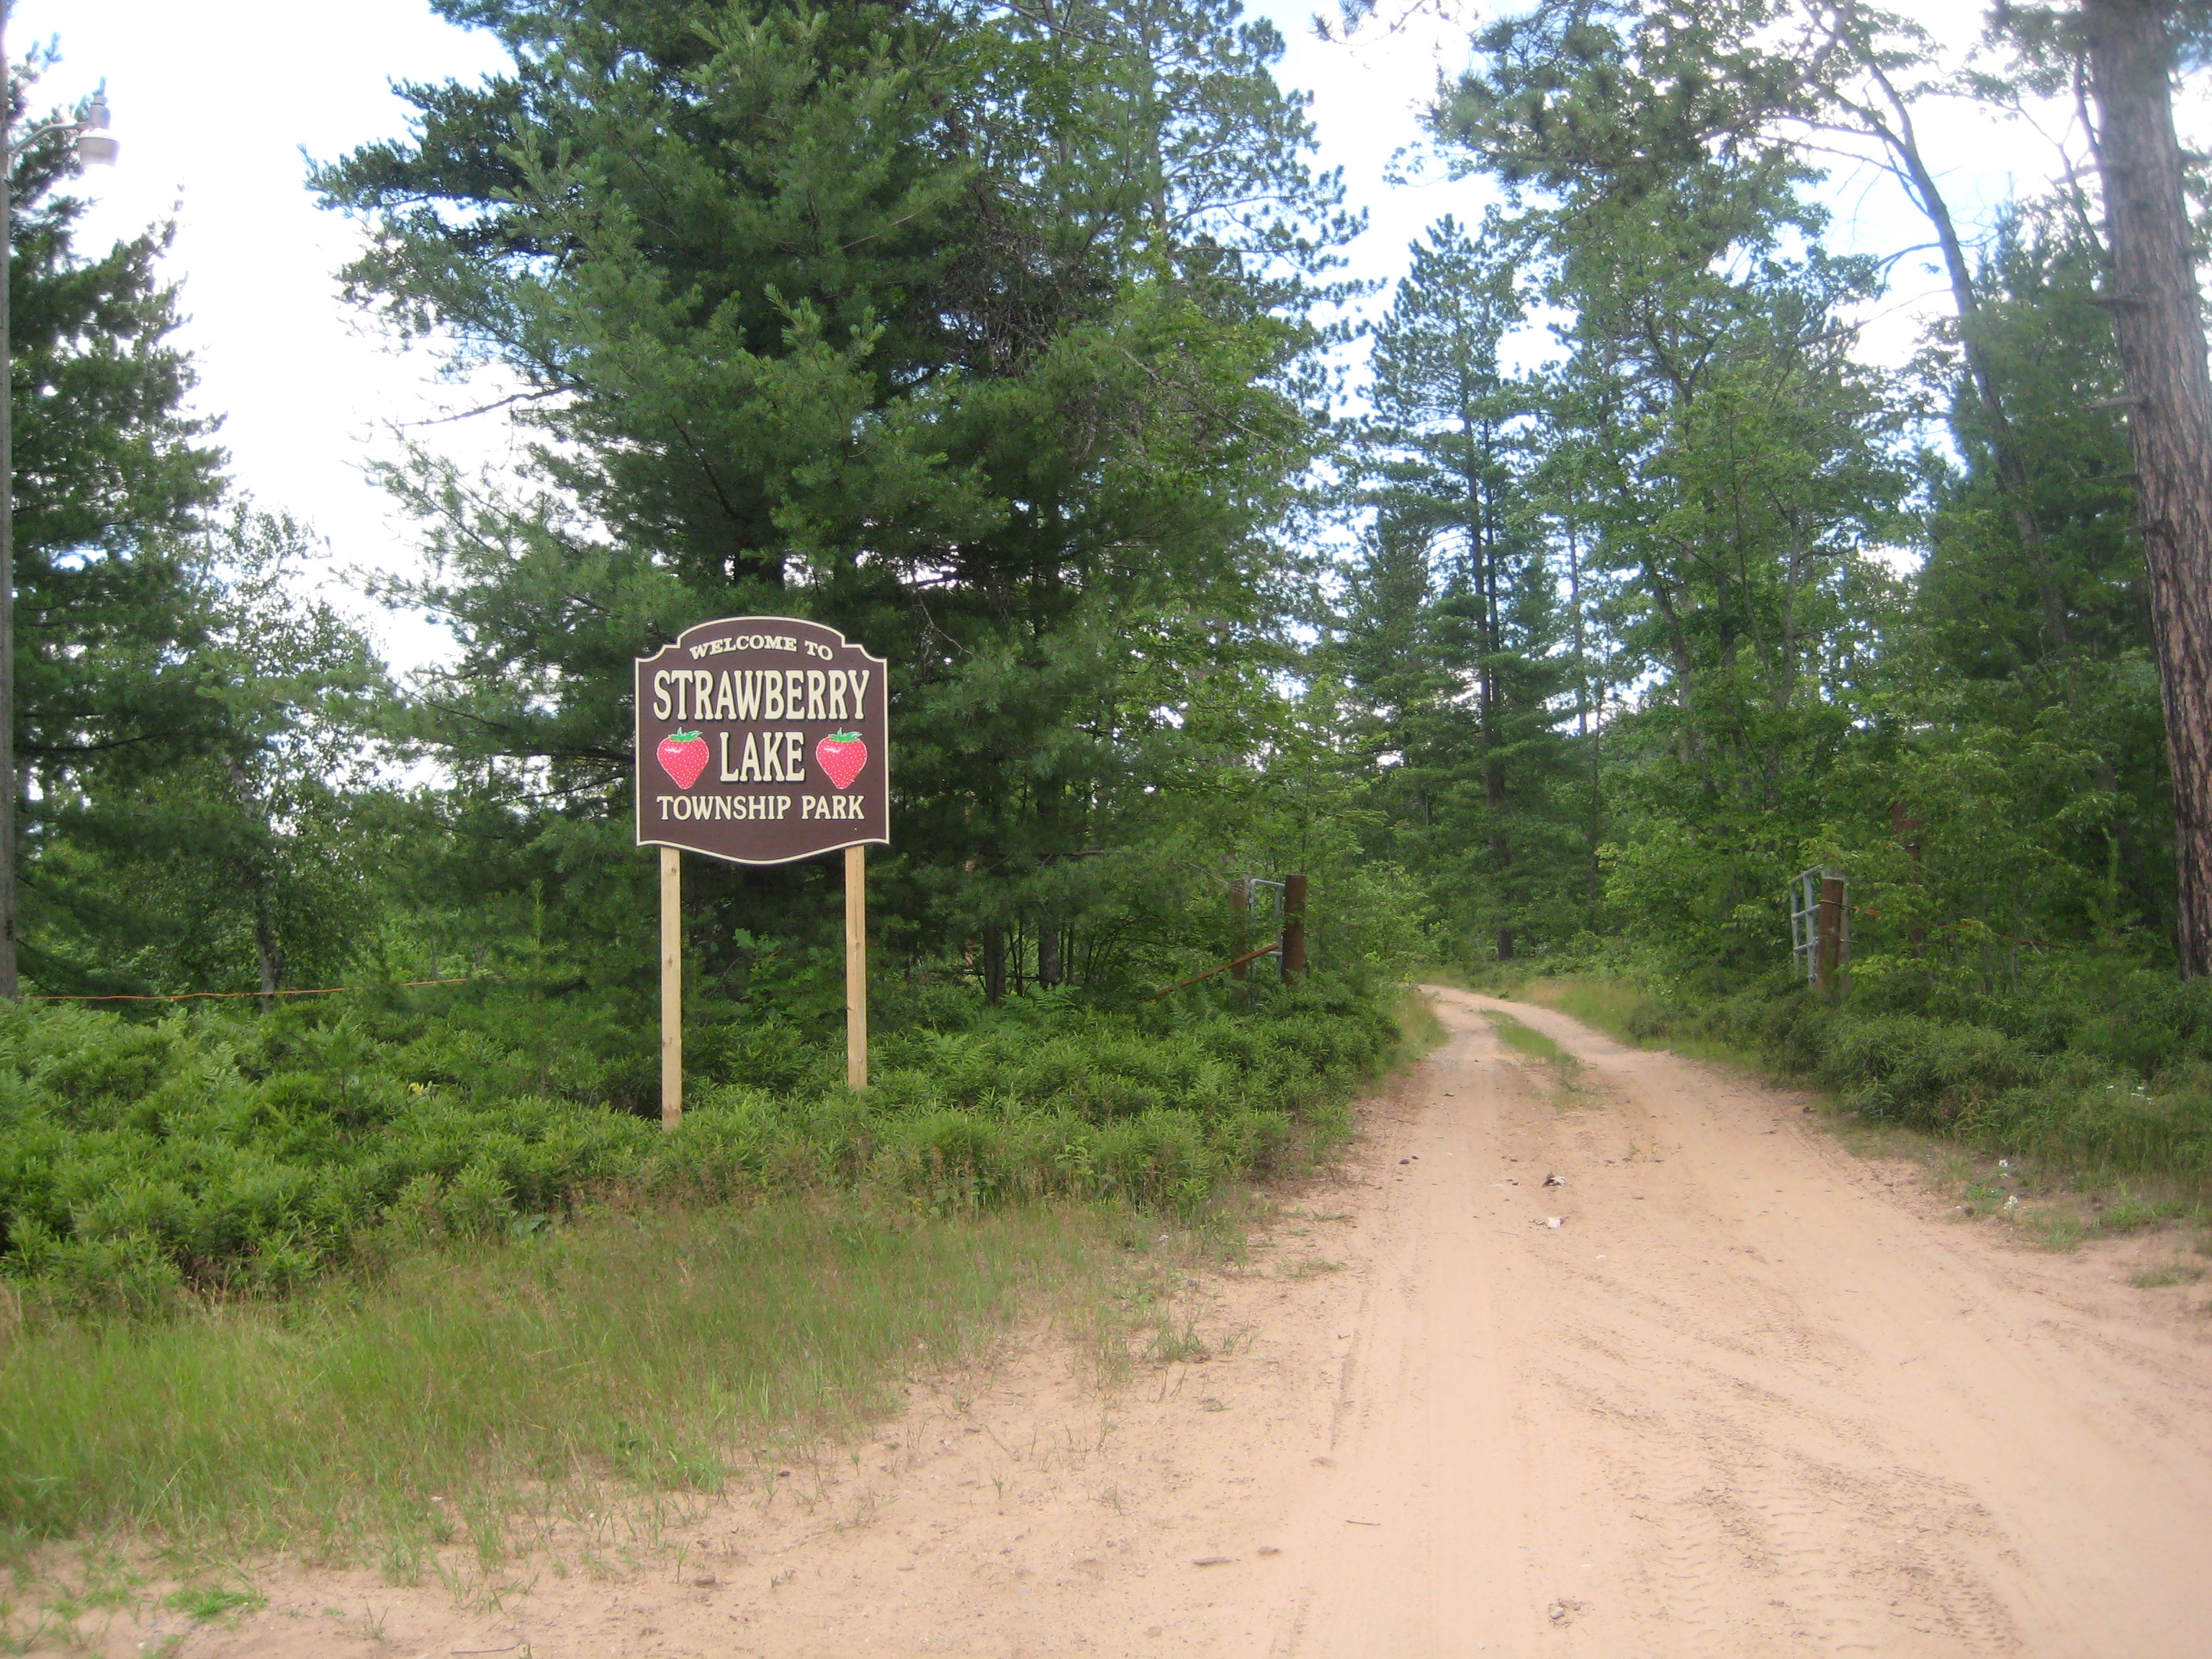 Michigan marquette county gwinn - Strawberry Lake Sands Twp Michigan Welcome Sign